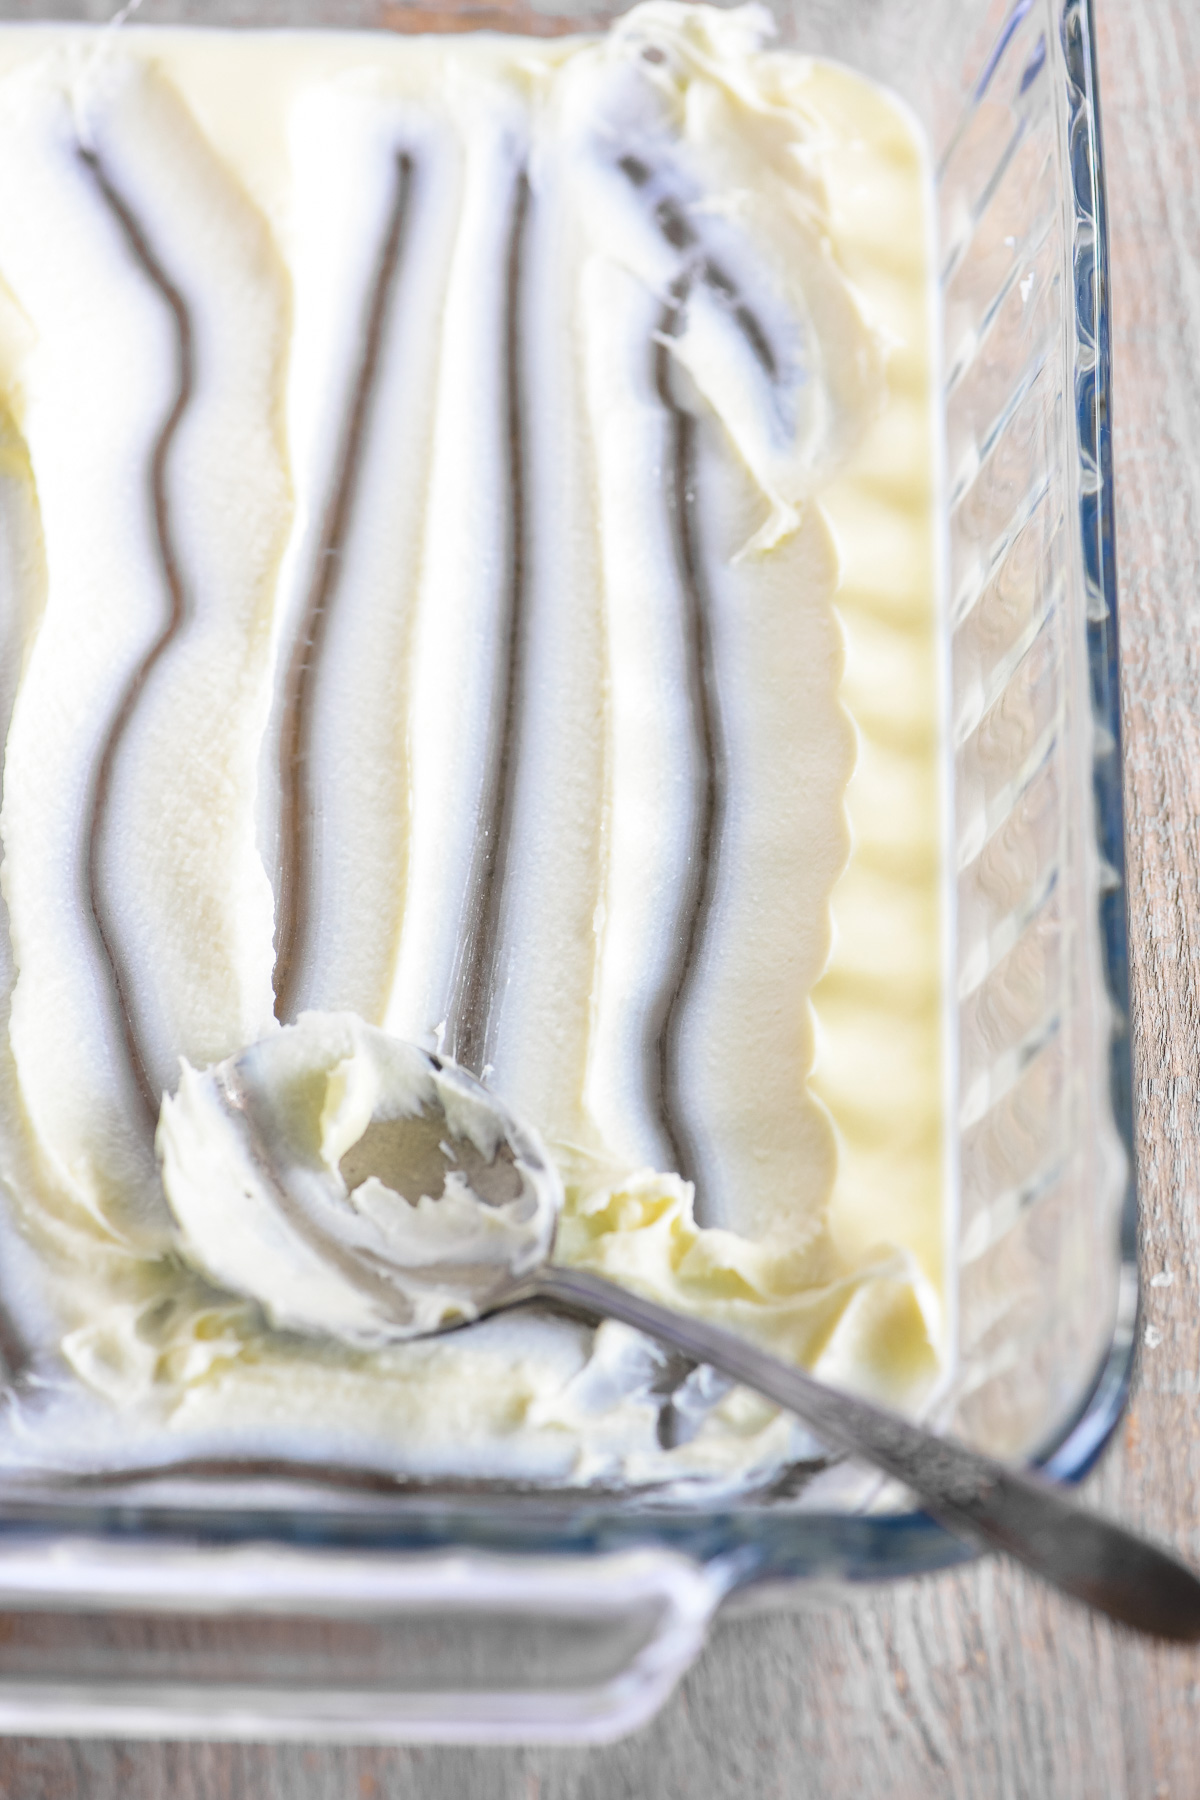 Homemade clotted cream in a glass dish